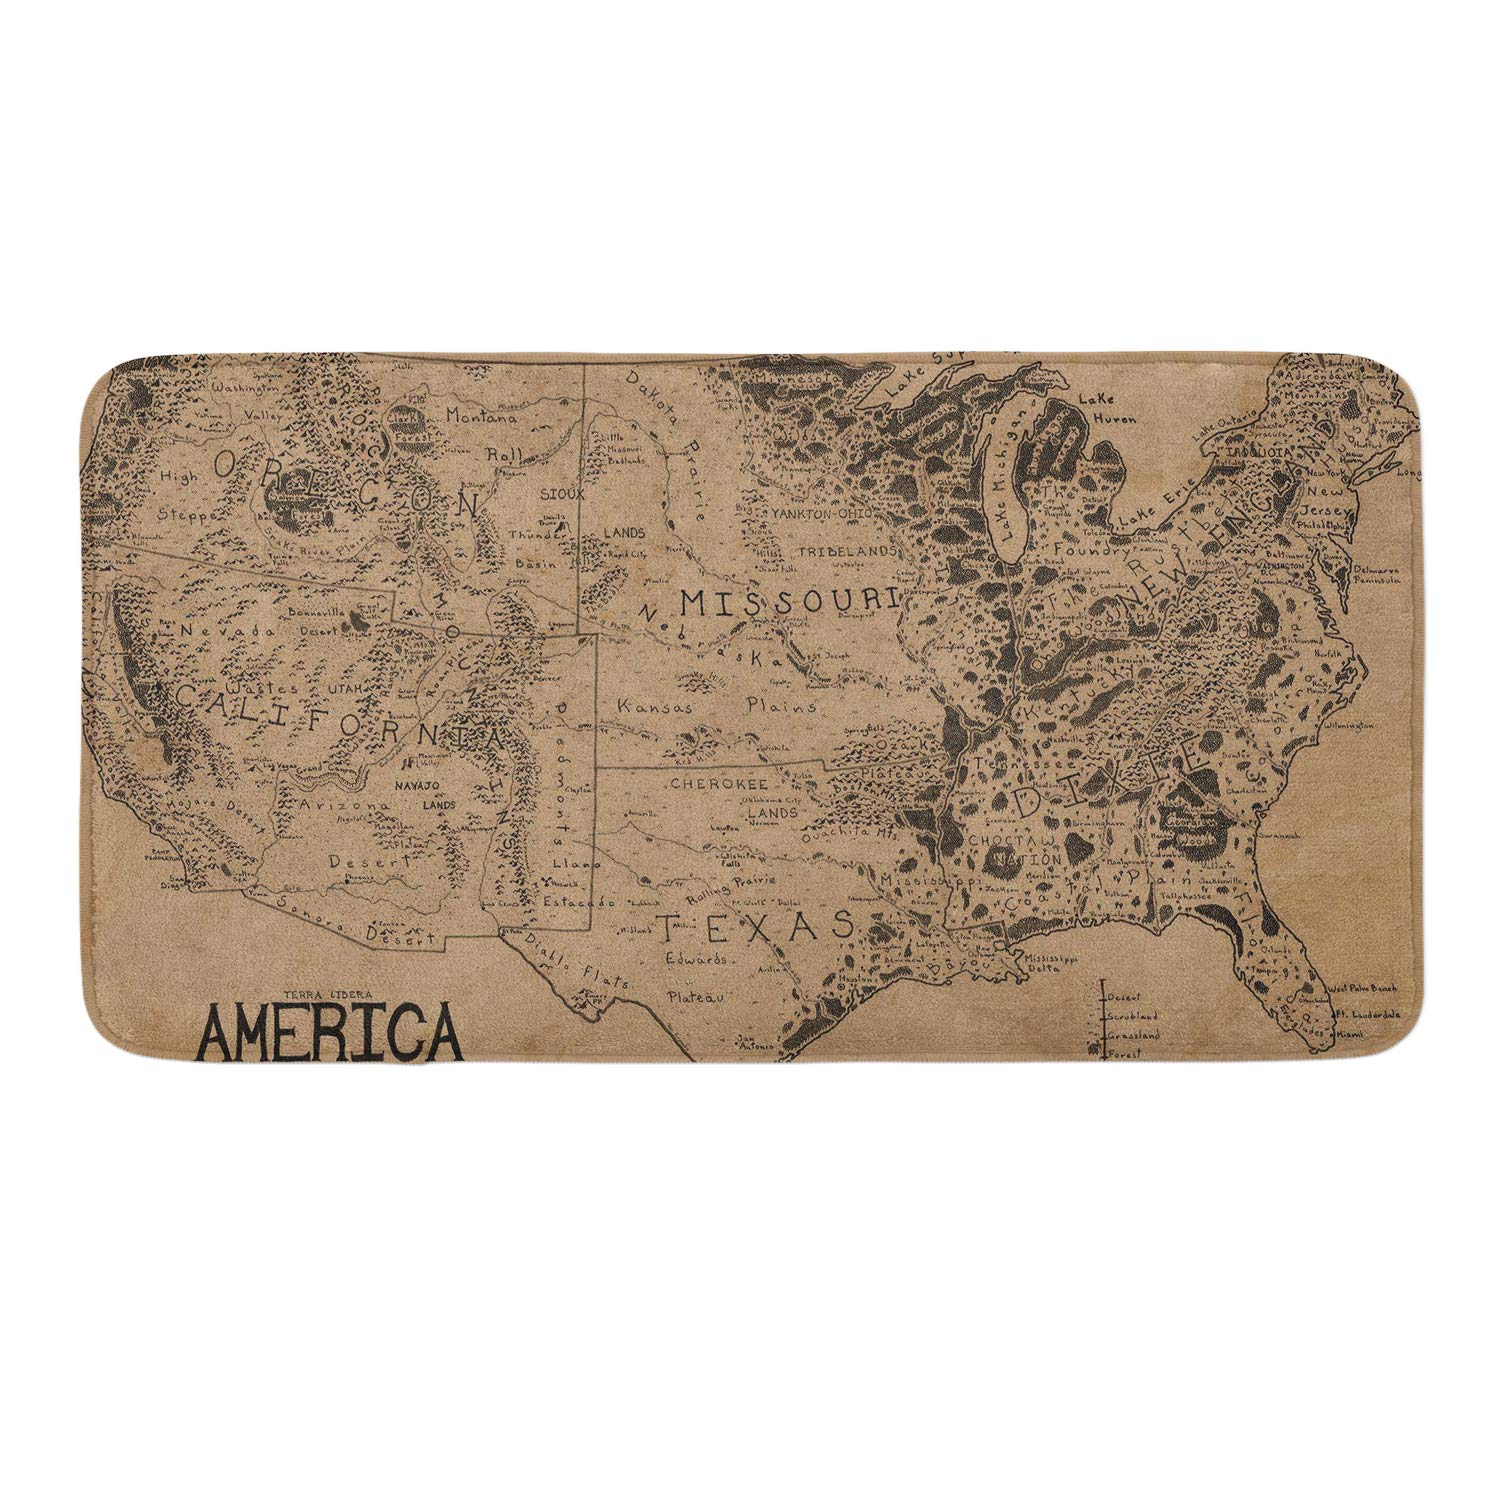 CIGOCI Memory Foam Non-Slip Bathroom Mat - 18 x 36 Inch, Extra Absorbent,Soft,Duarable and Quick-Dry Shaggy Mat, 3D PrintWorld Map by CIGOCI (Image #1)